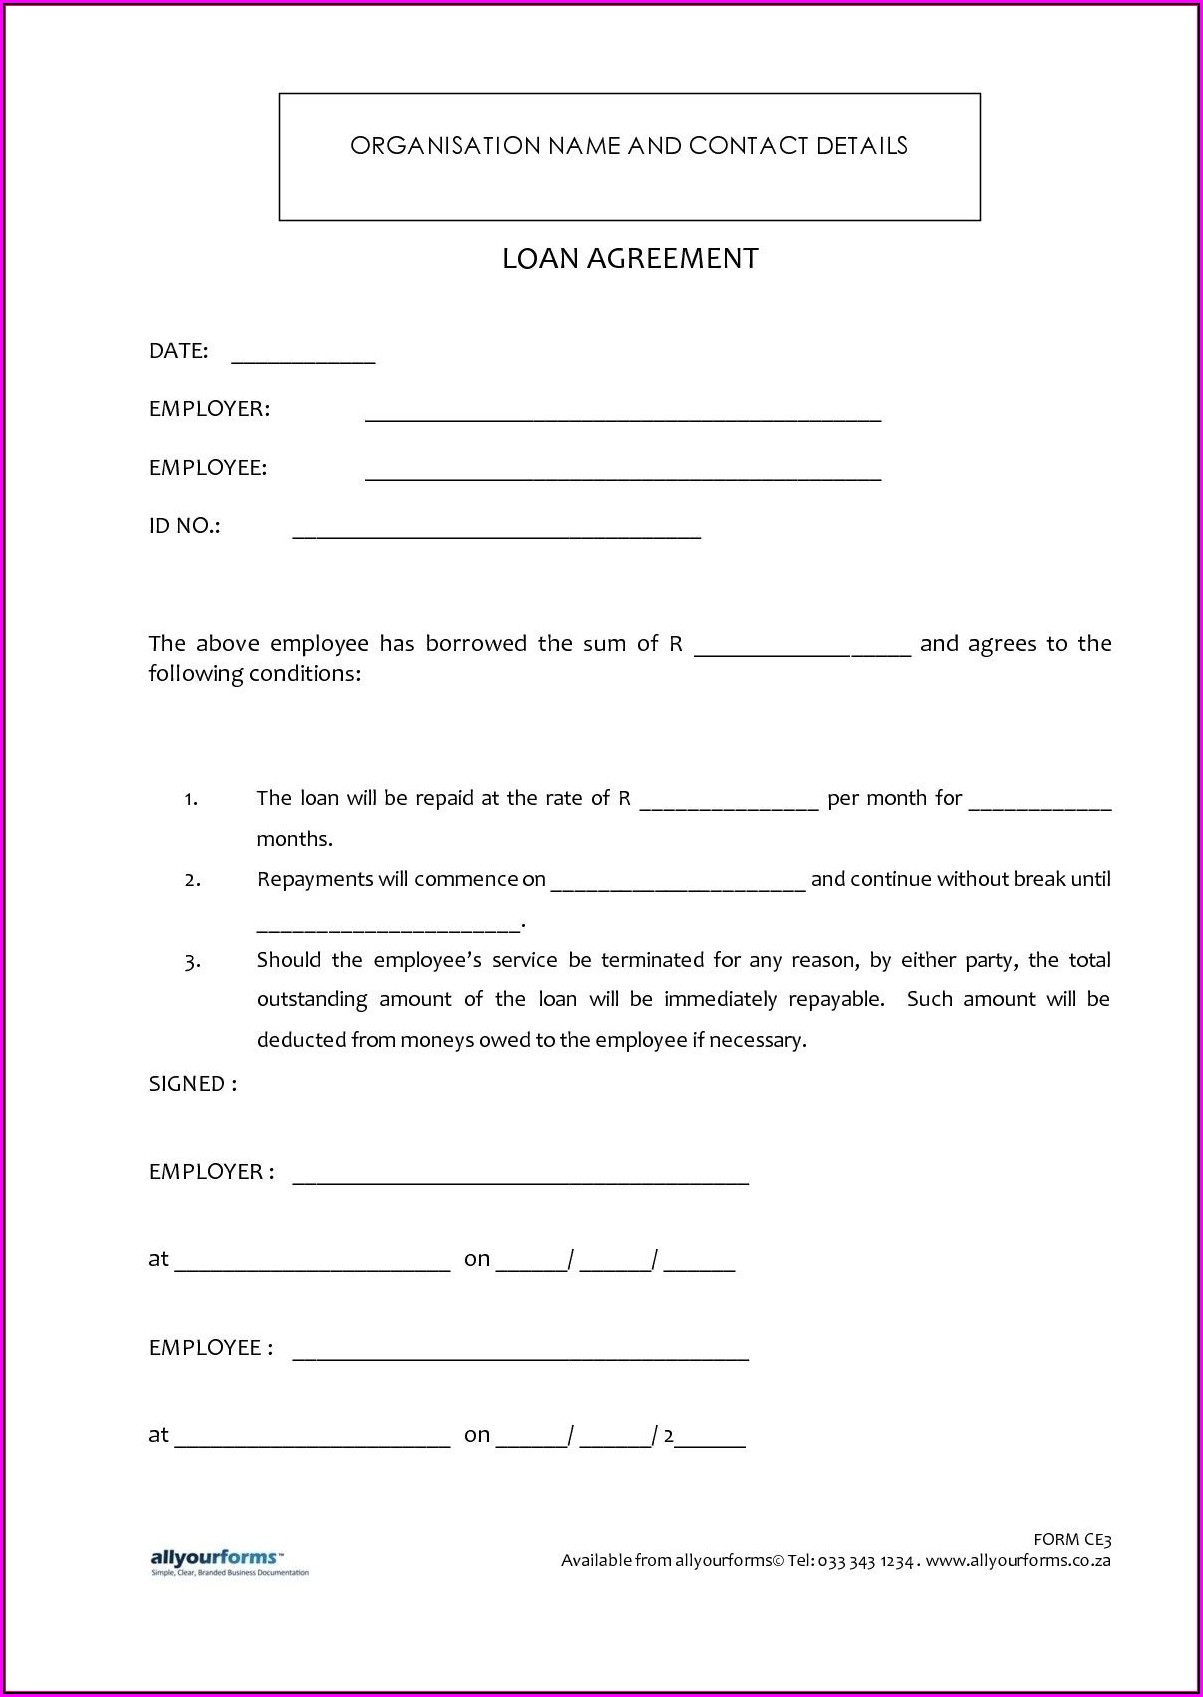 Loan Agreement Sample In Word Format